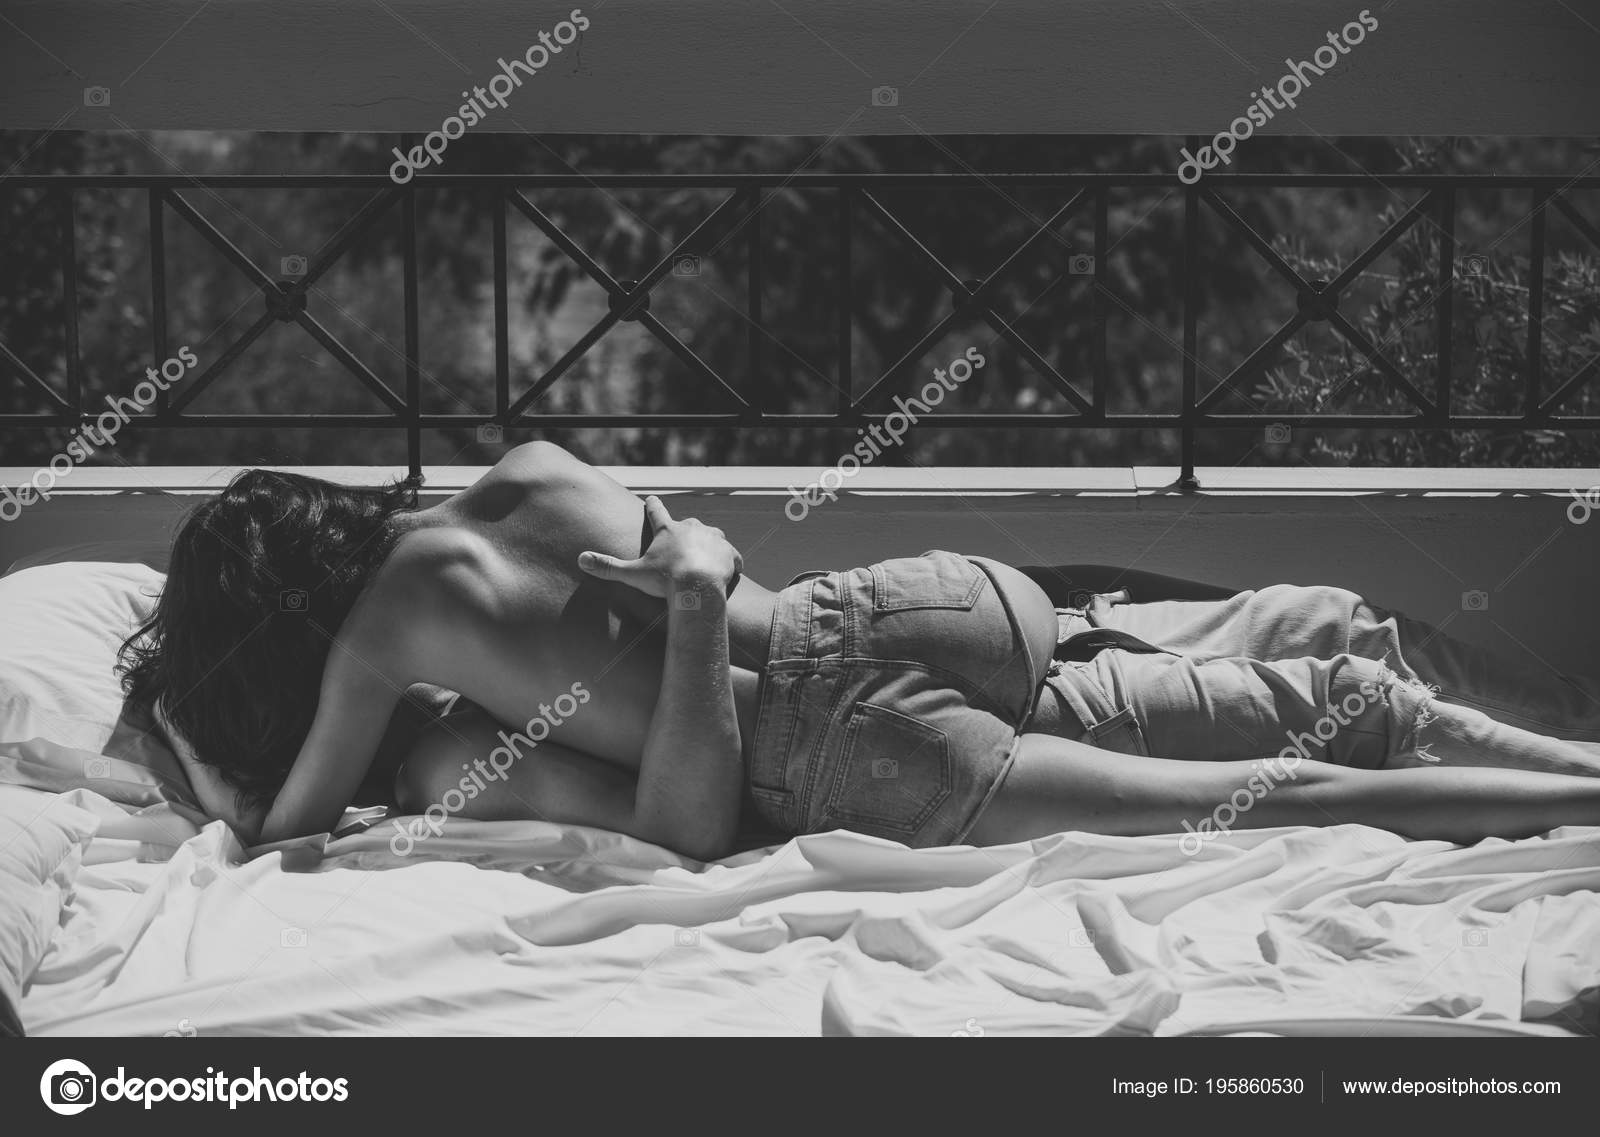 Topless kissing couples sex for lovely